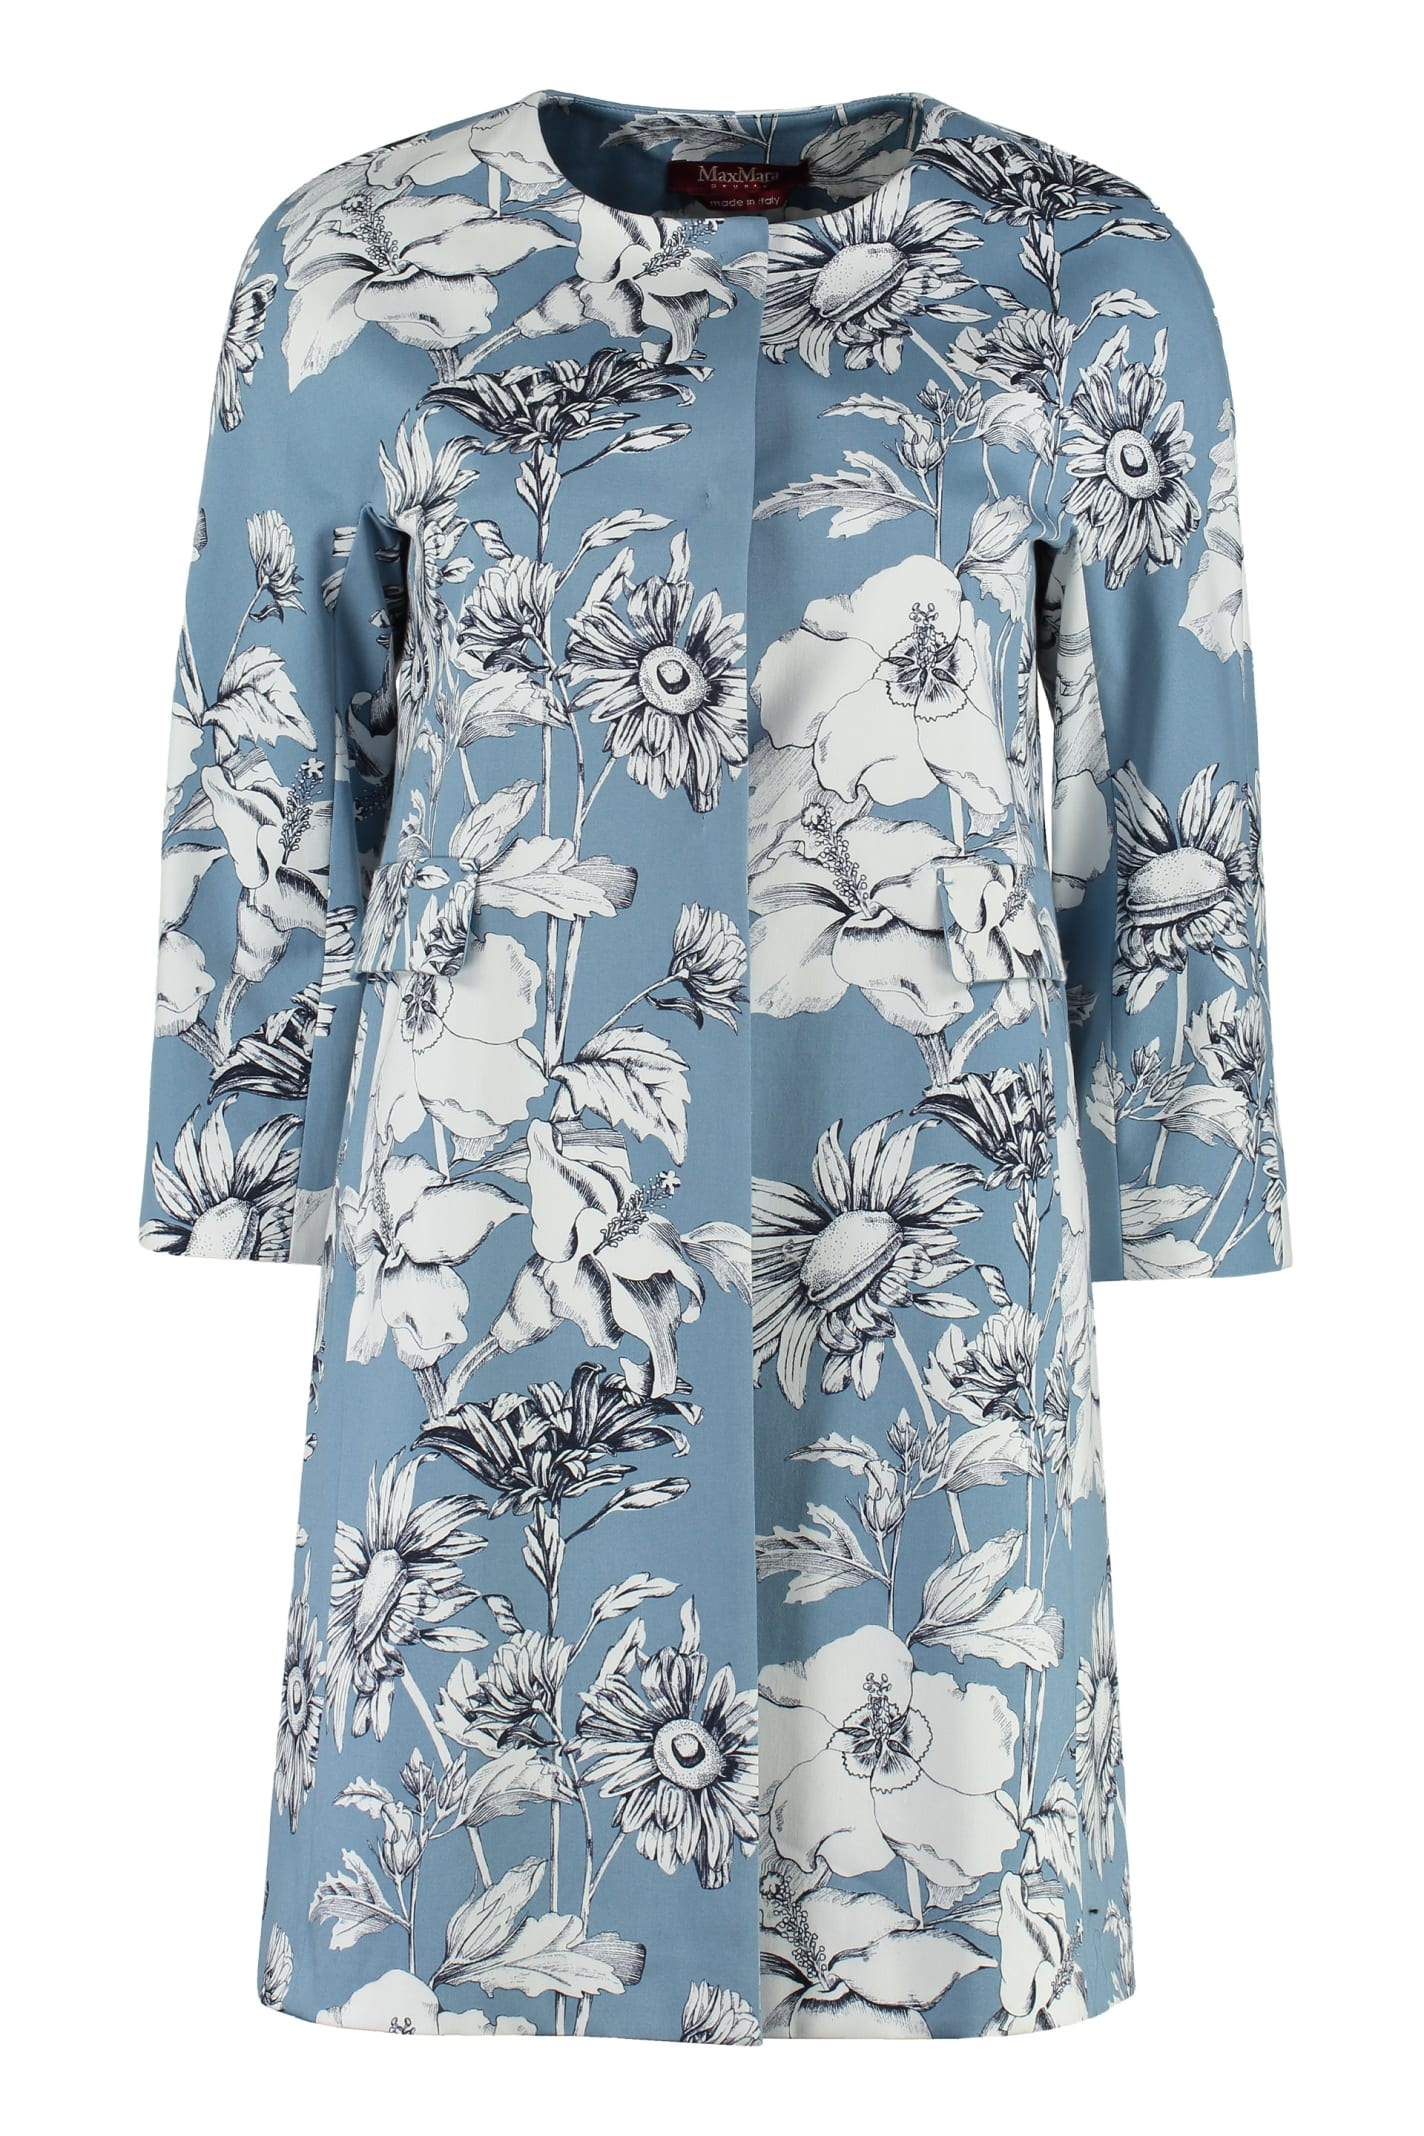 Max Mara Studio Zampata Printed Cotton Coat